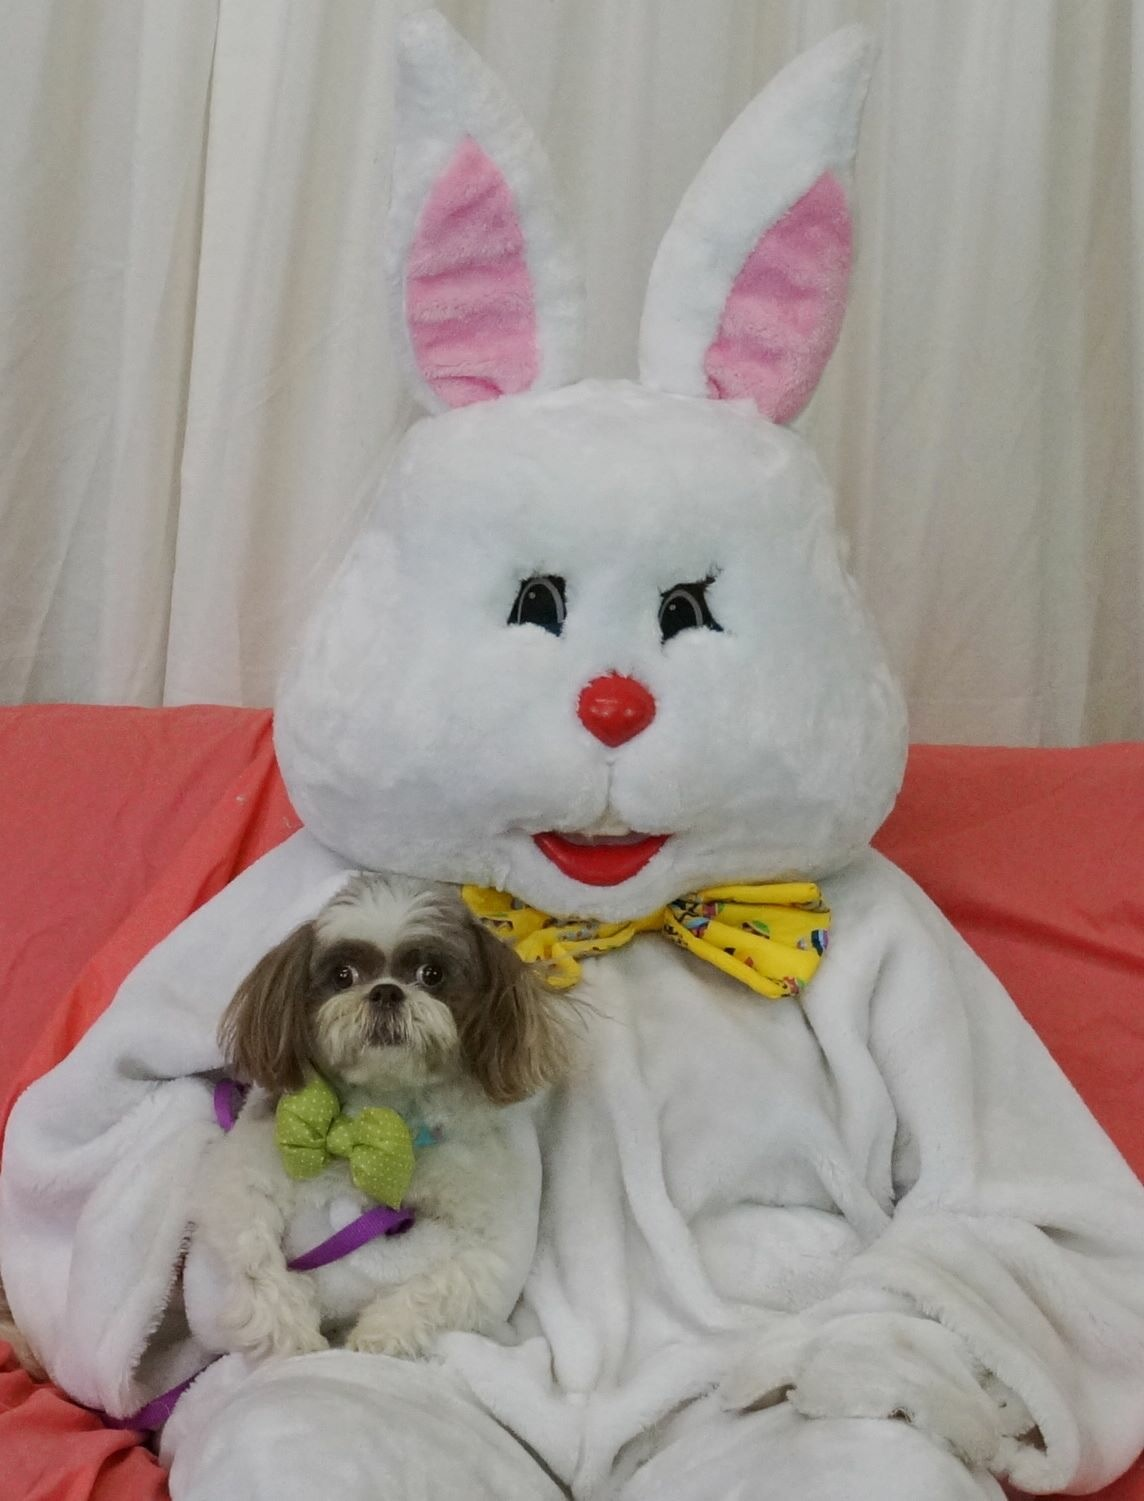 The oh so scary Easter Bunny